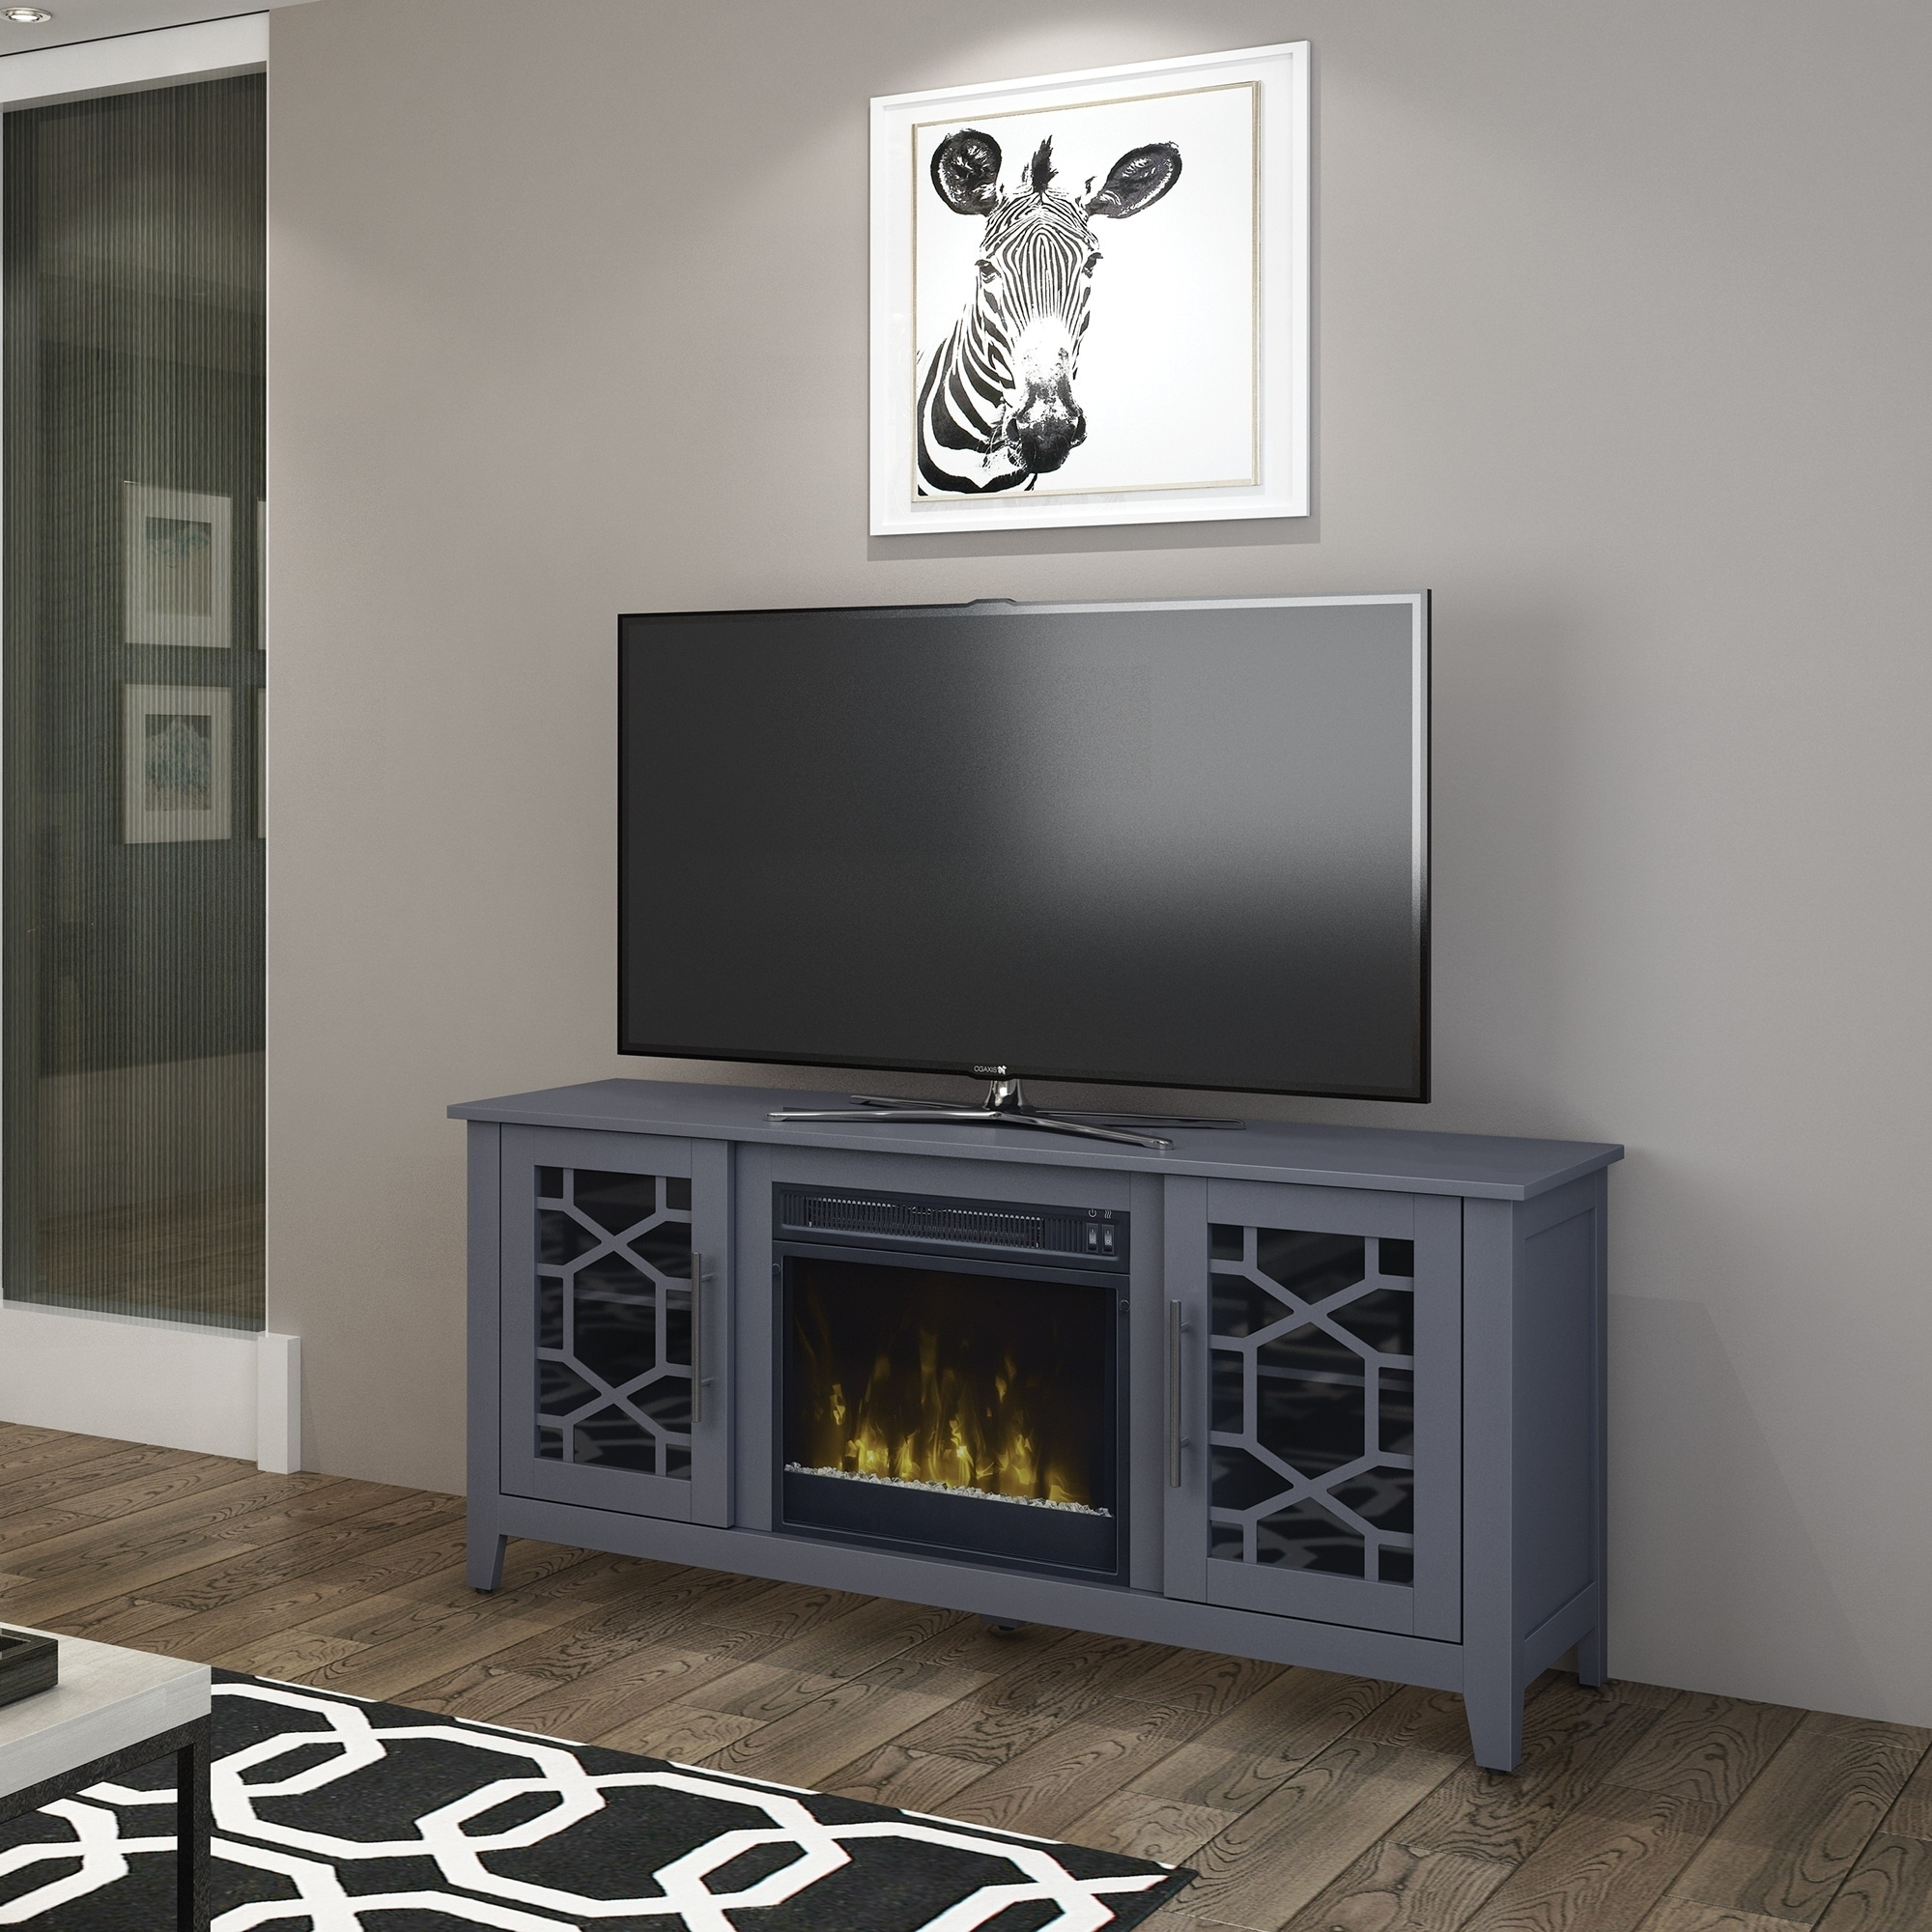 Clarion Tv Stand For Tvs Up To 60 Inches With Electric Fireplace Cool Gray Ebay